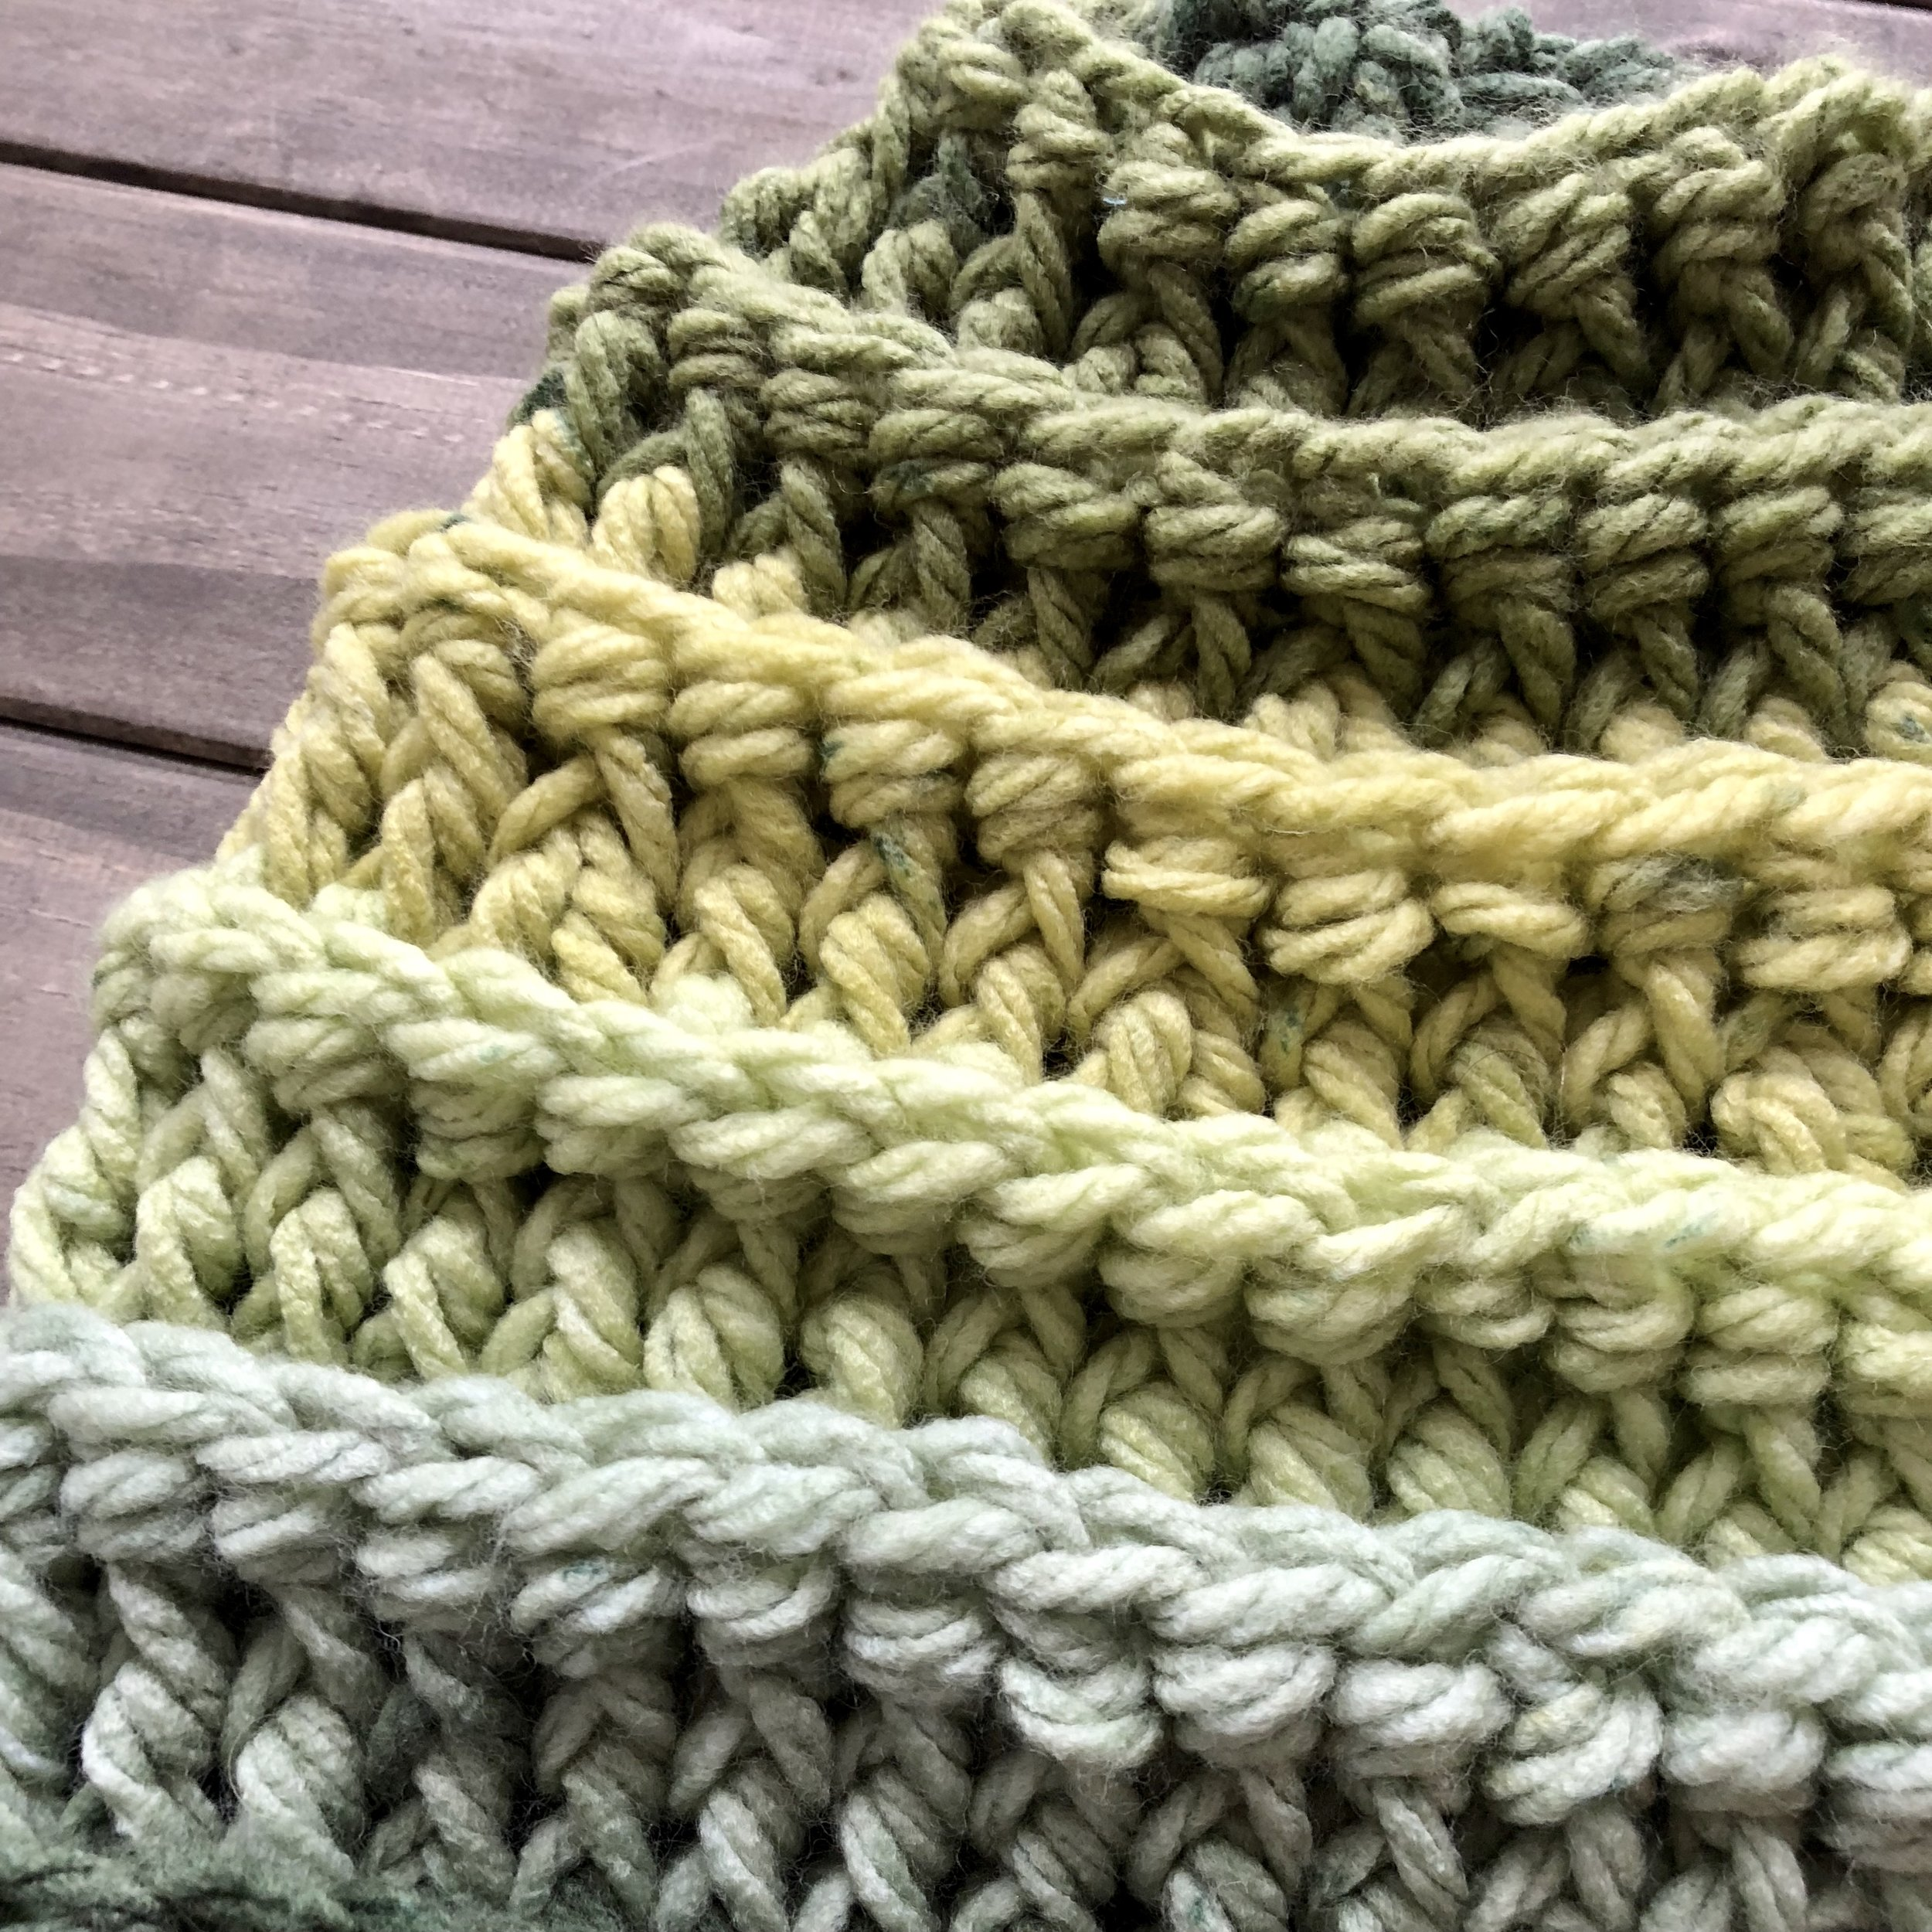 Colorado Spruce Beanie - Crochet Pattern - The Roving Nomad